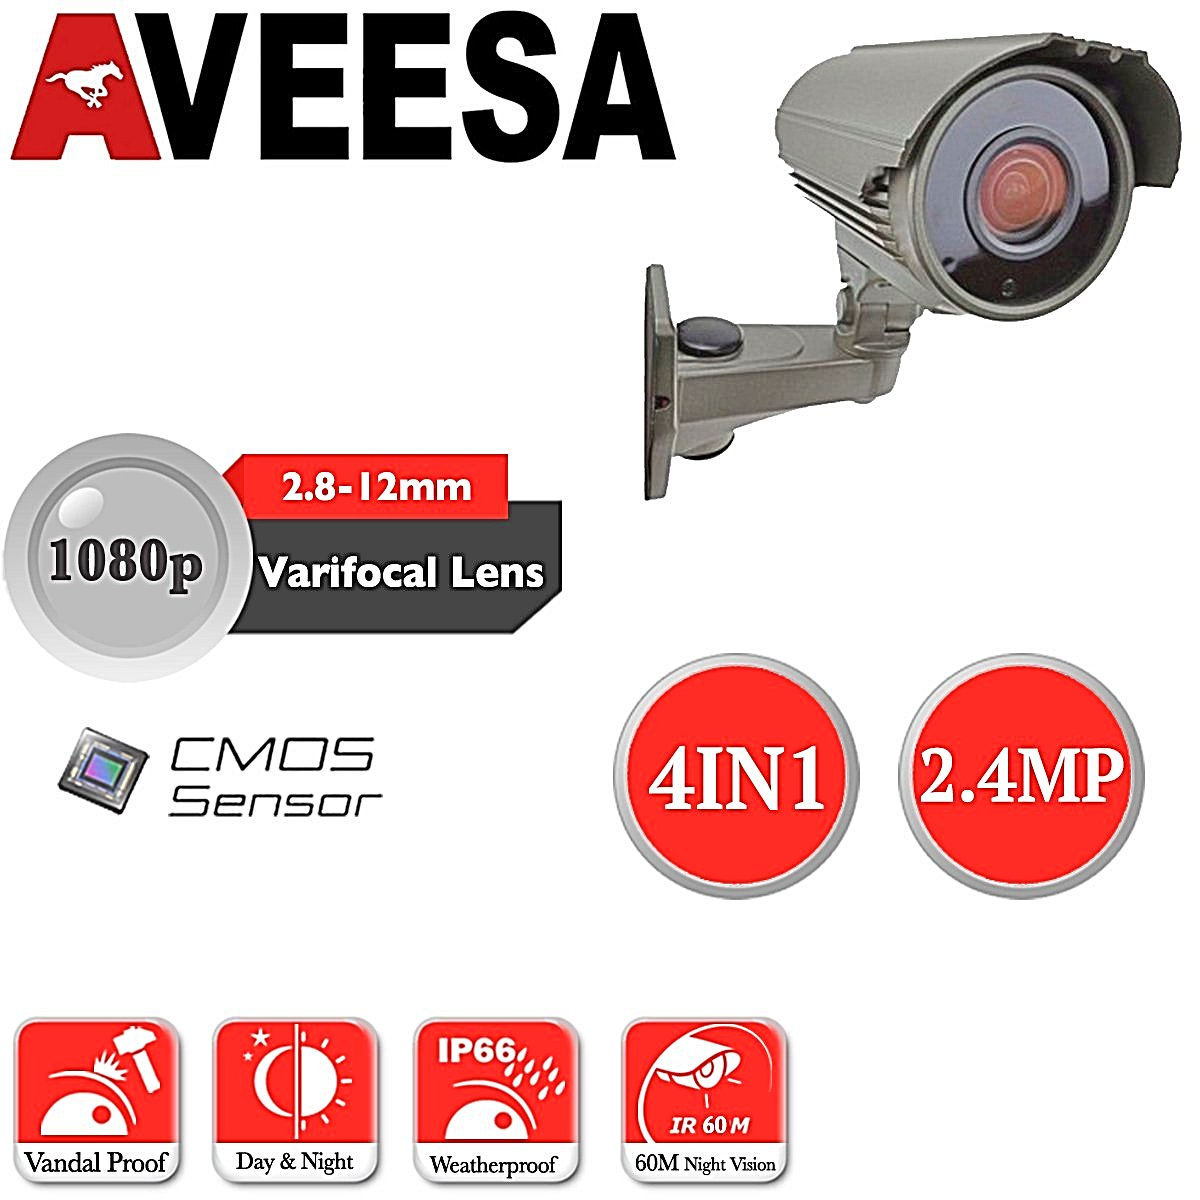 HIKVISION 4CH DVR Up to 4x AVEESA Bullet CCTV Camera